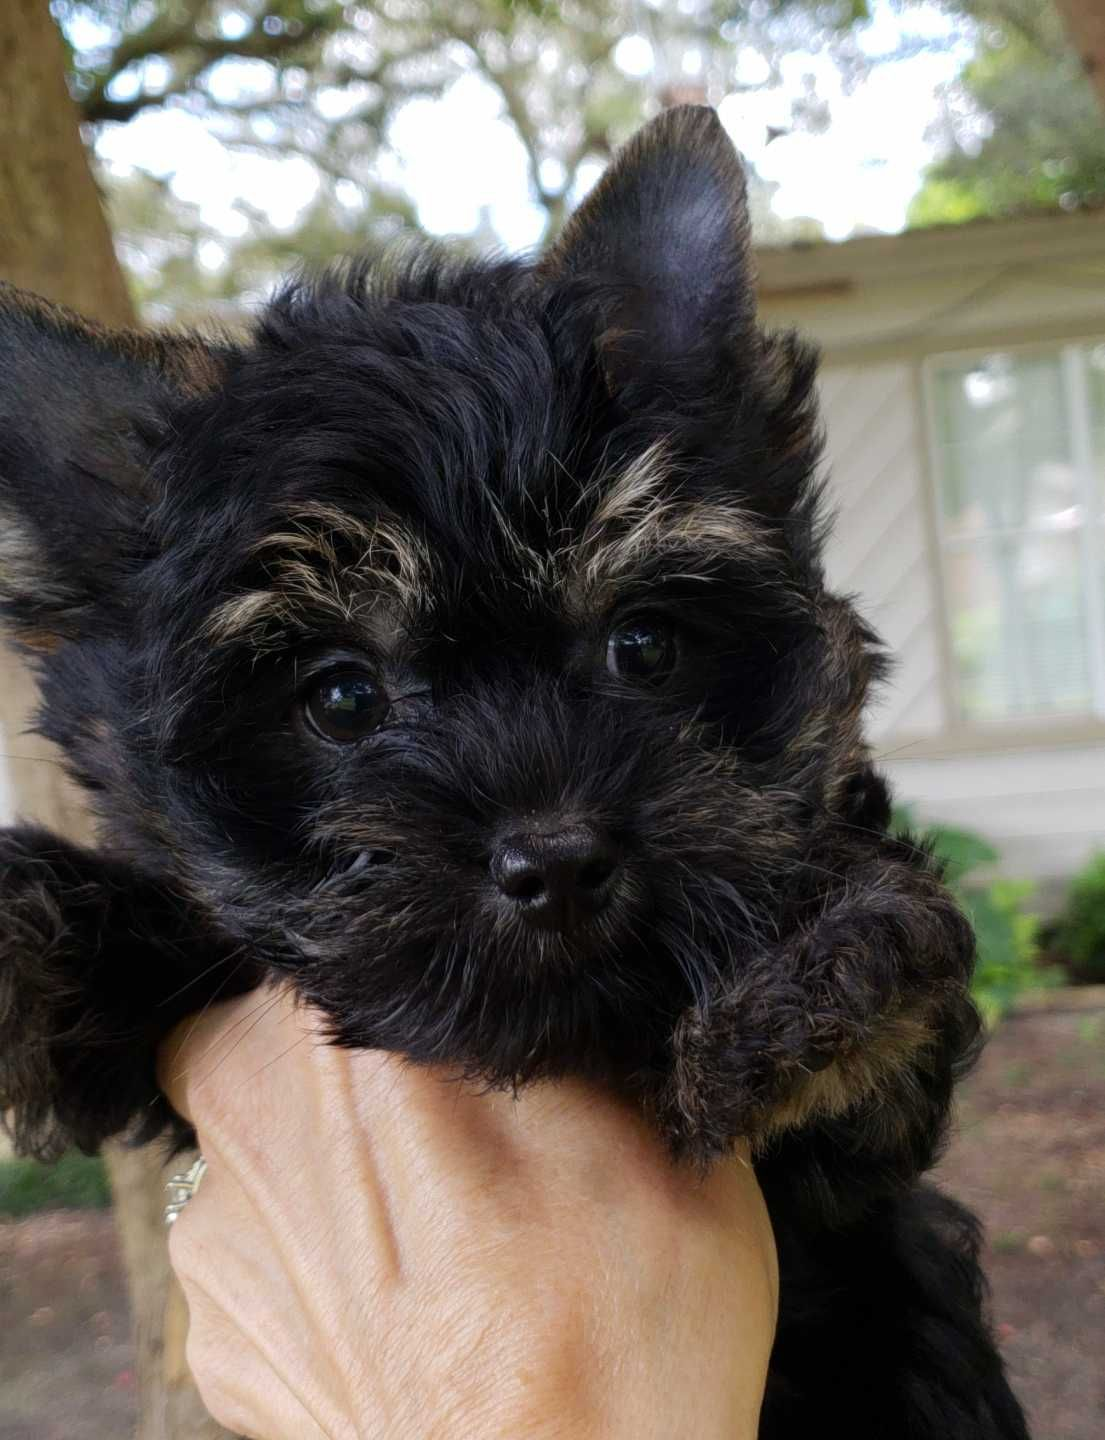 Mostly Black Yorkshire Terrier 12 Week Old Female For Sale Carries Chocolate Sable More Colors Yorkie Yorkshire Terrier Terrier